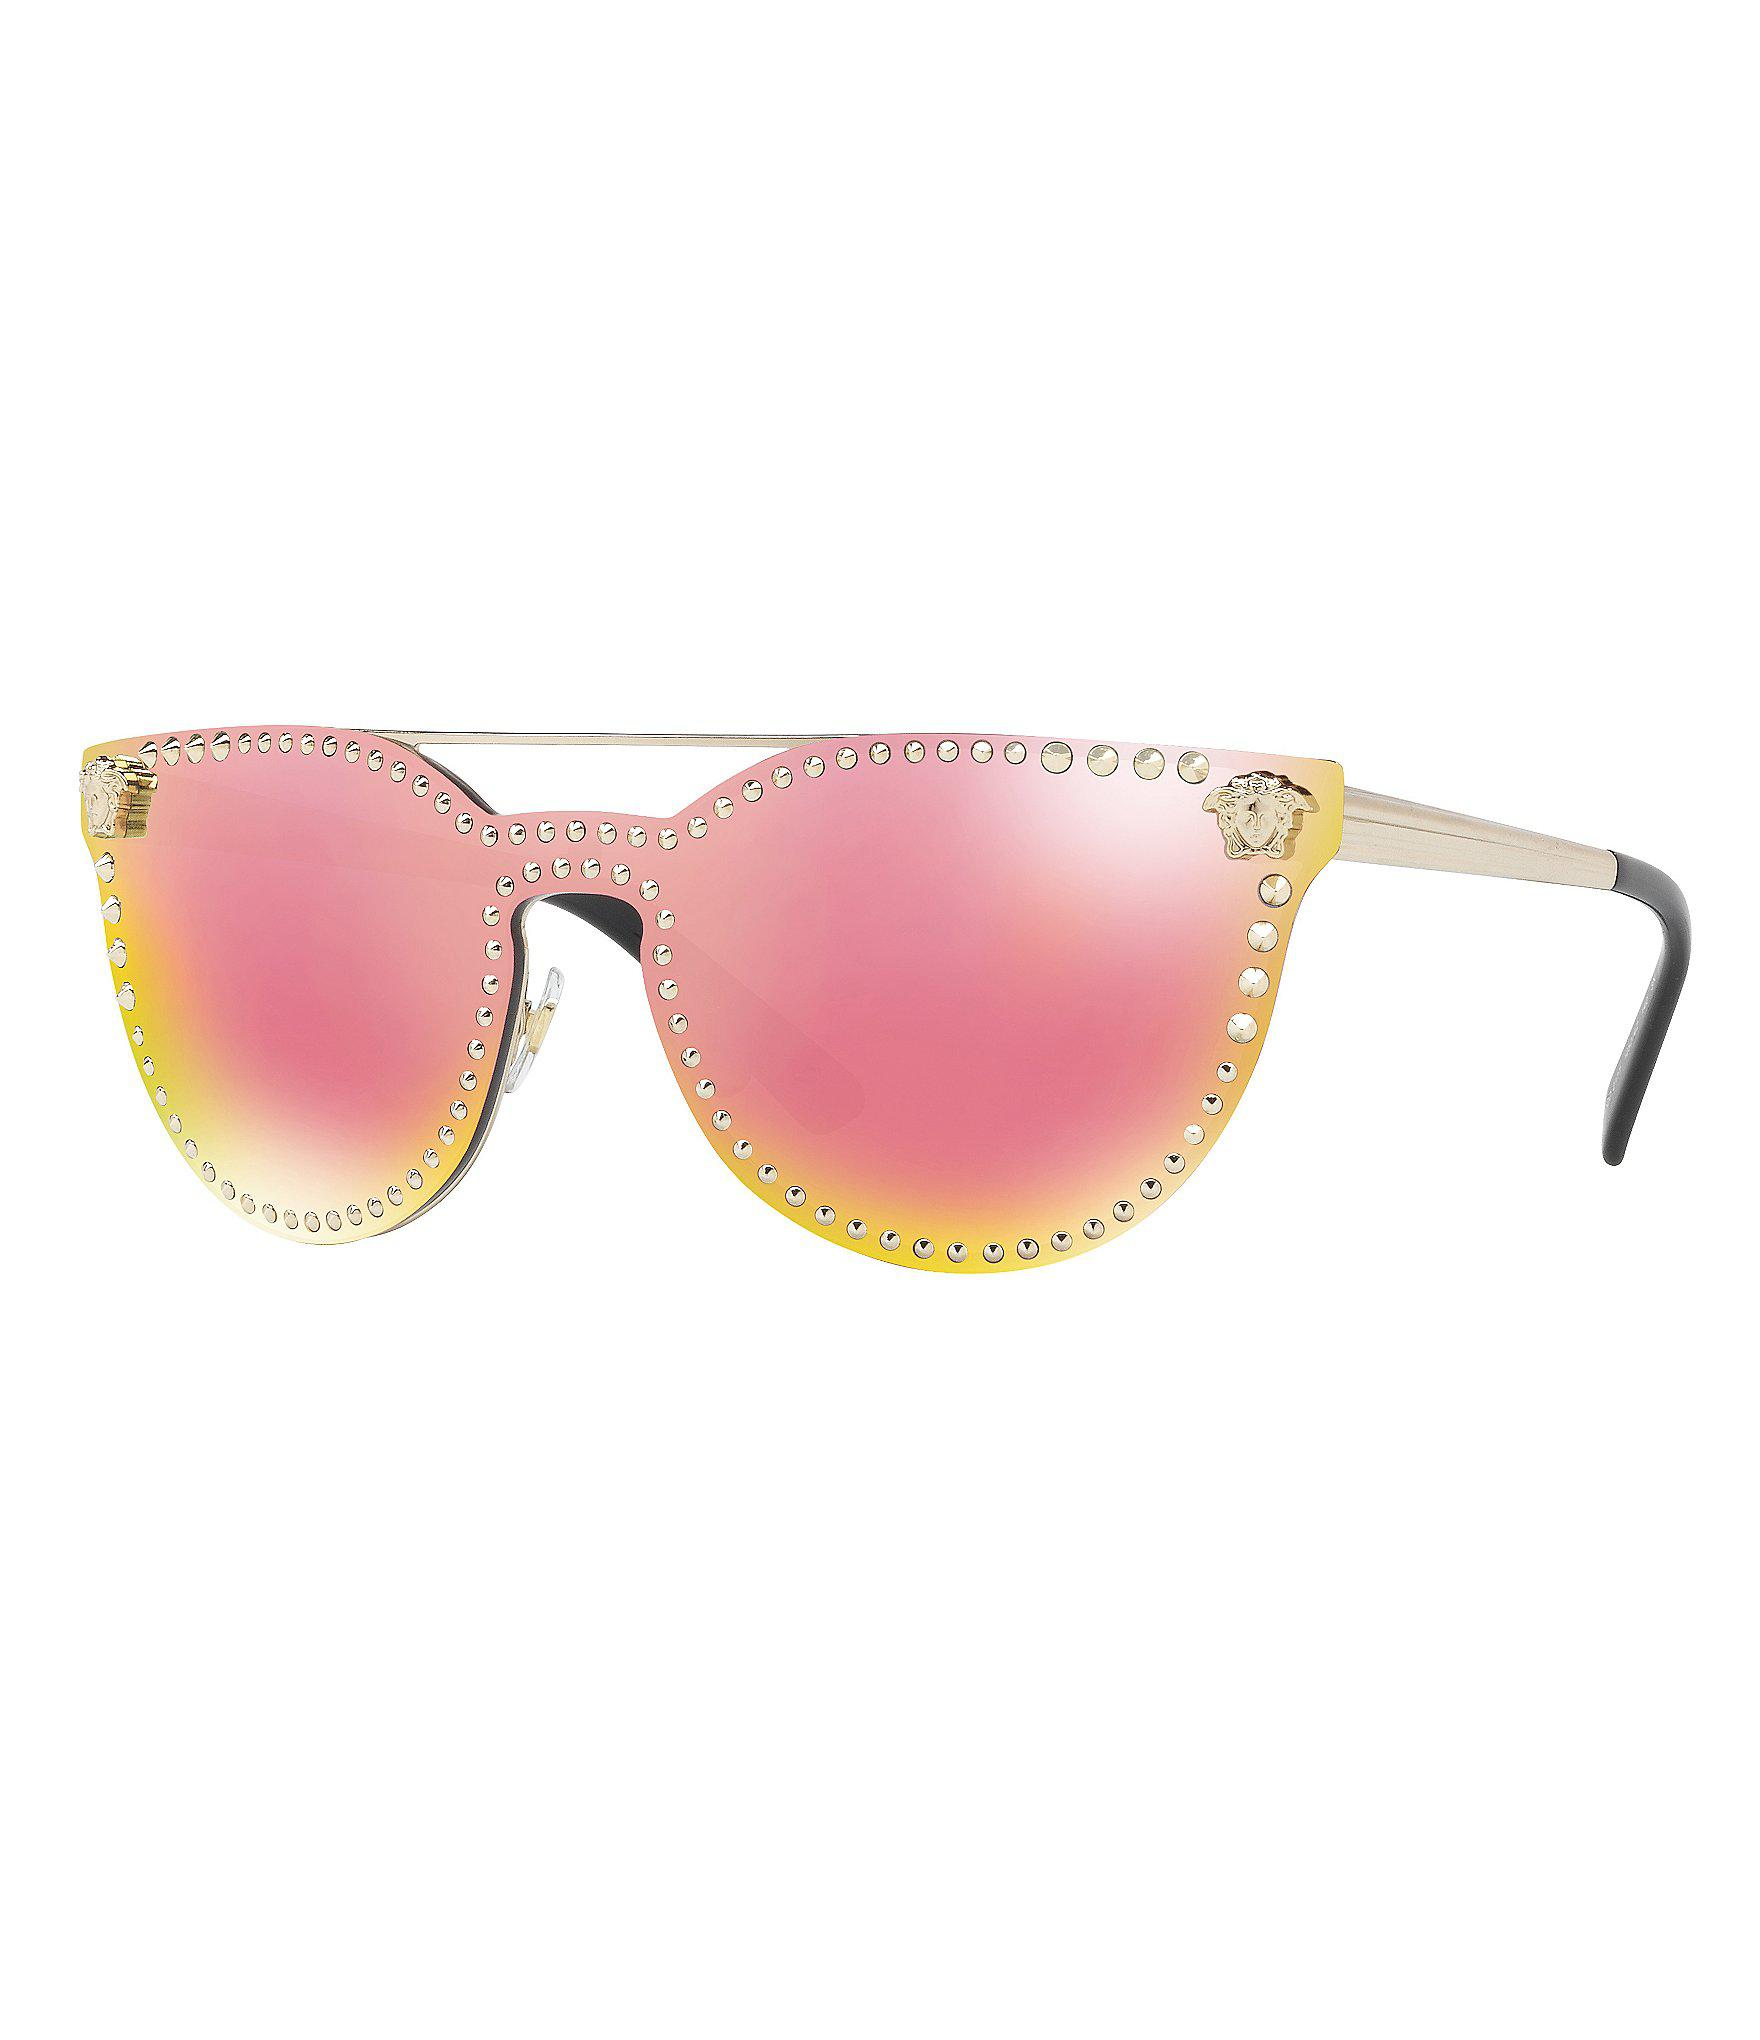 6daf6e4220 Gallery. Previously sold at  Dillard s · Women s Mirrored Sunglasses